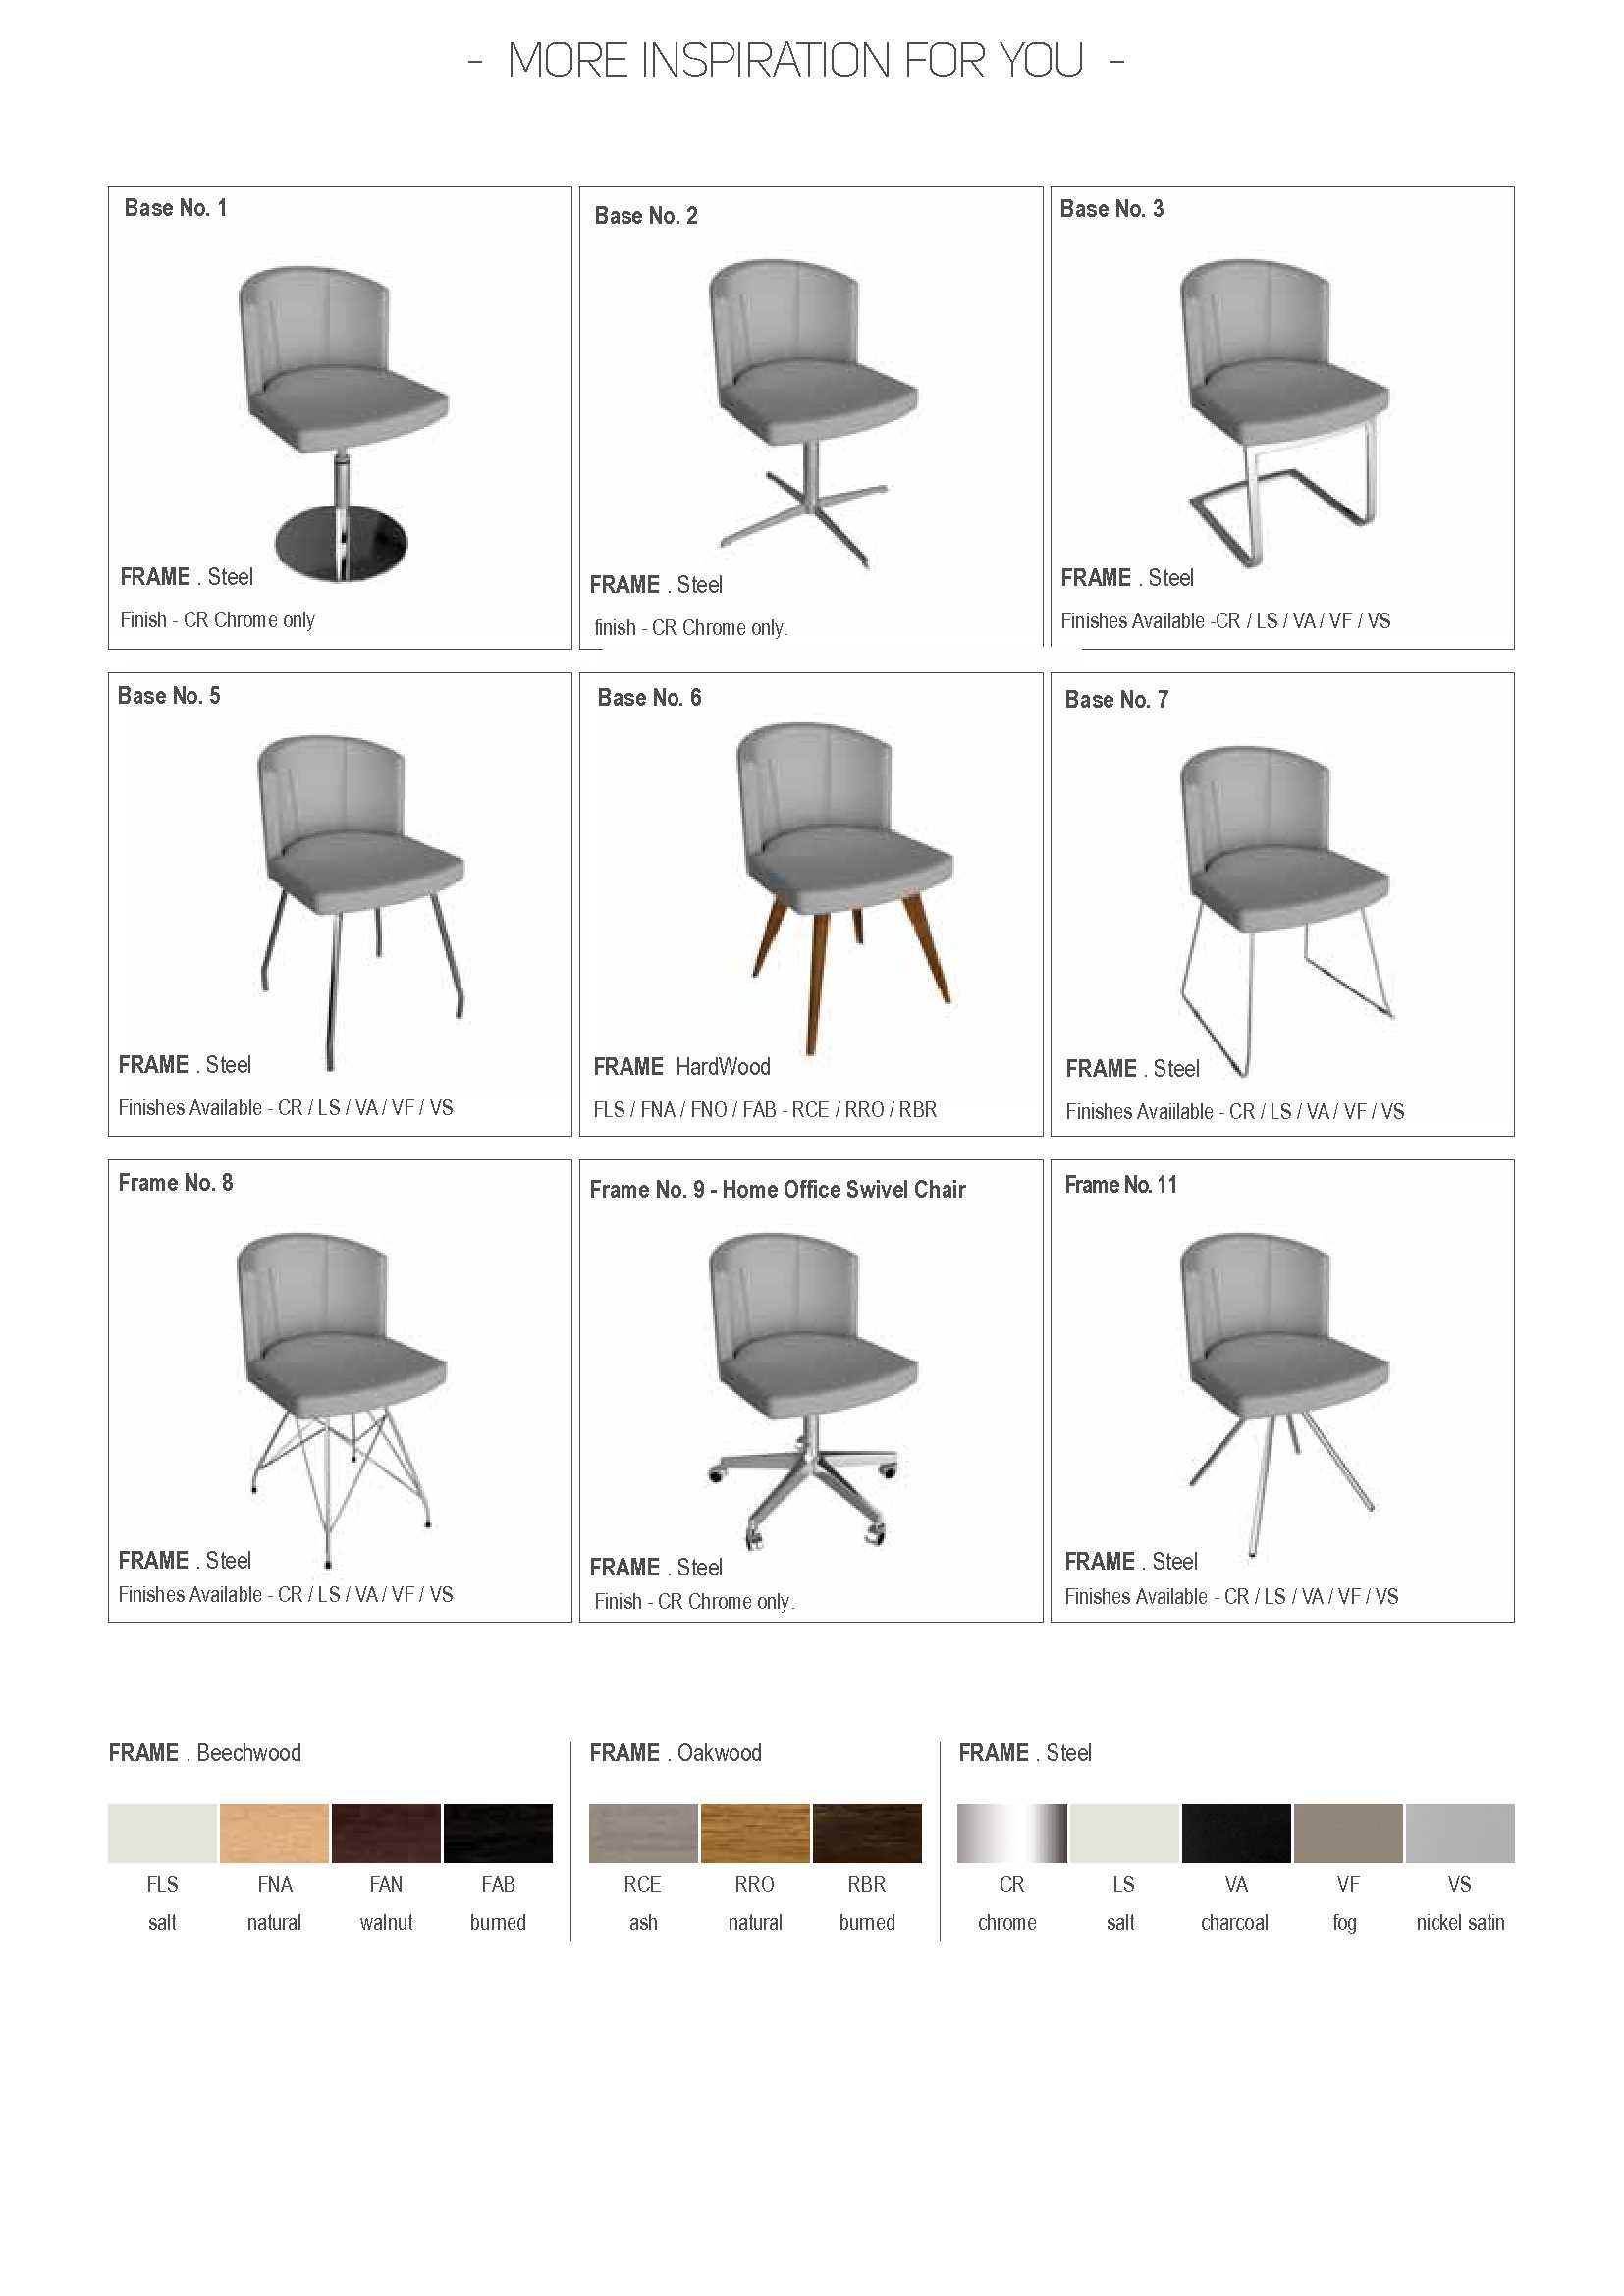 Doris S Stools -All Bases Available.